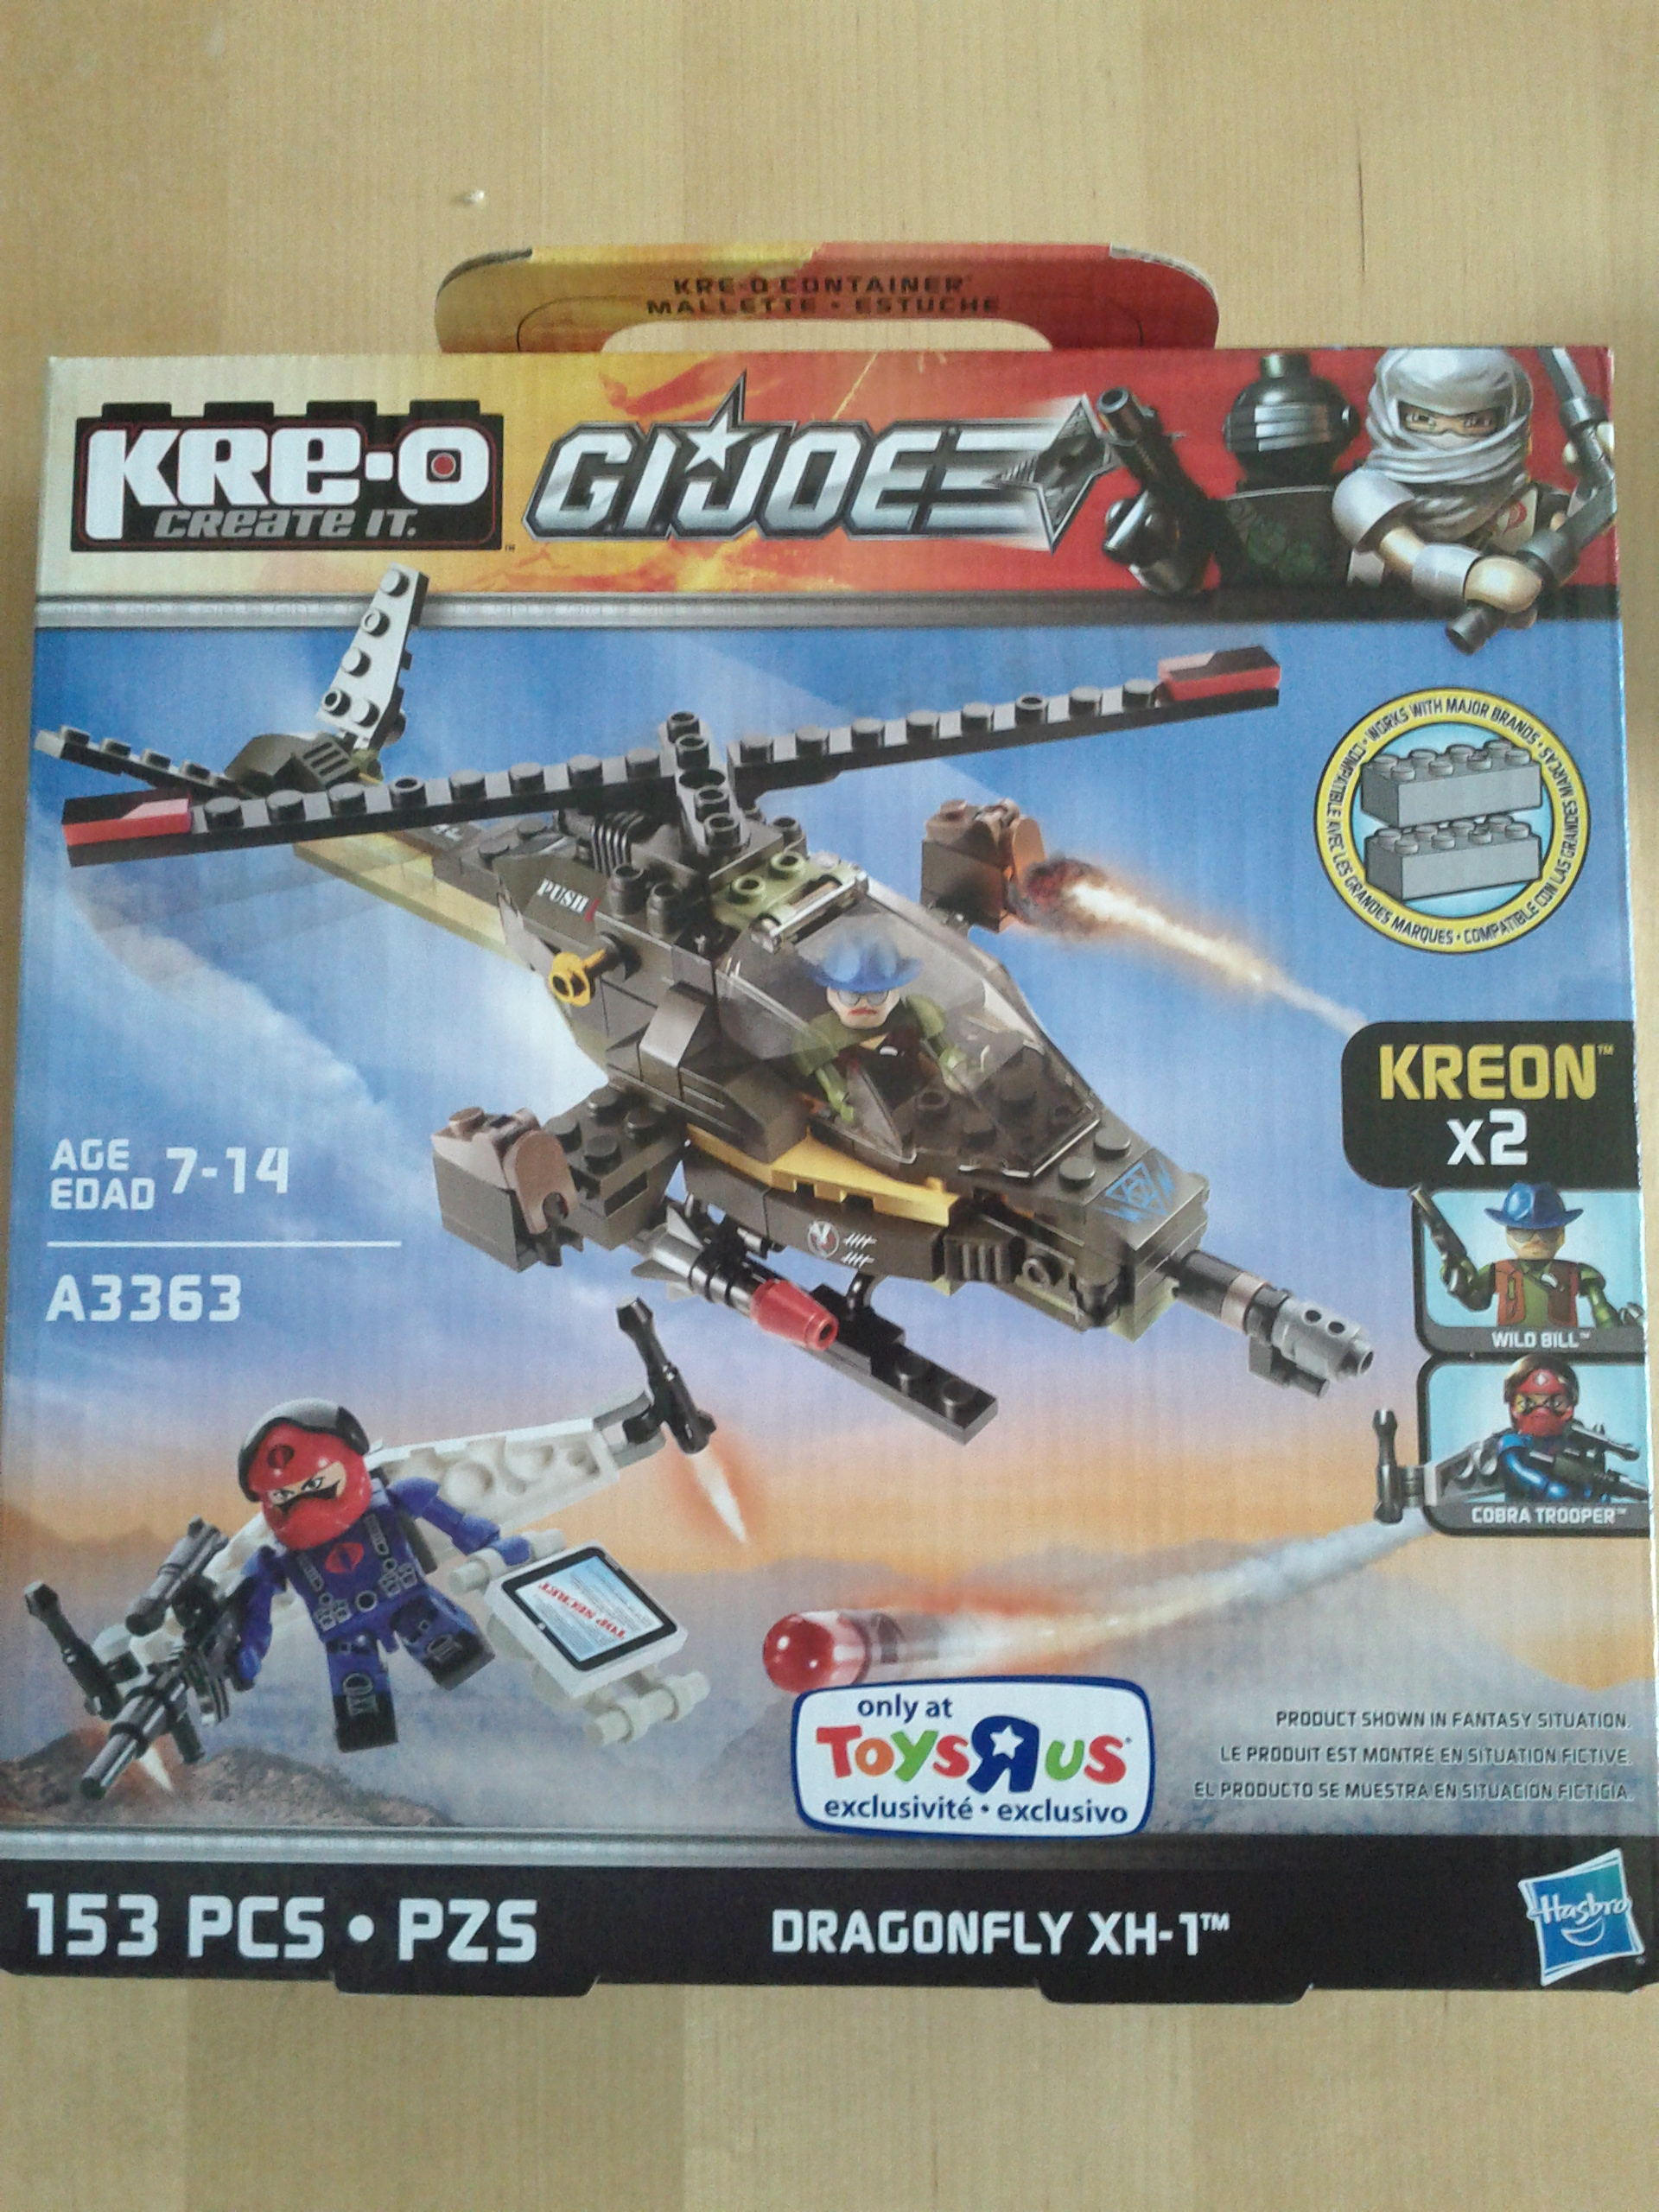 First box of Kre-O has arrived